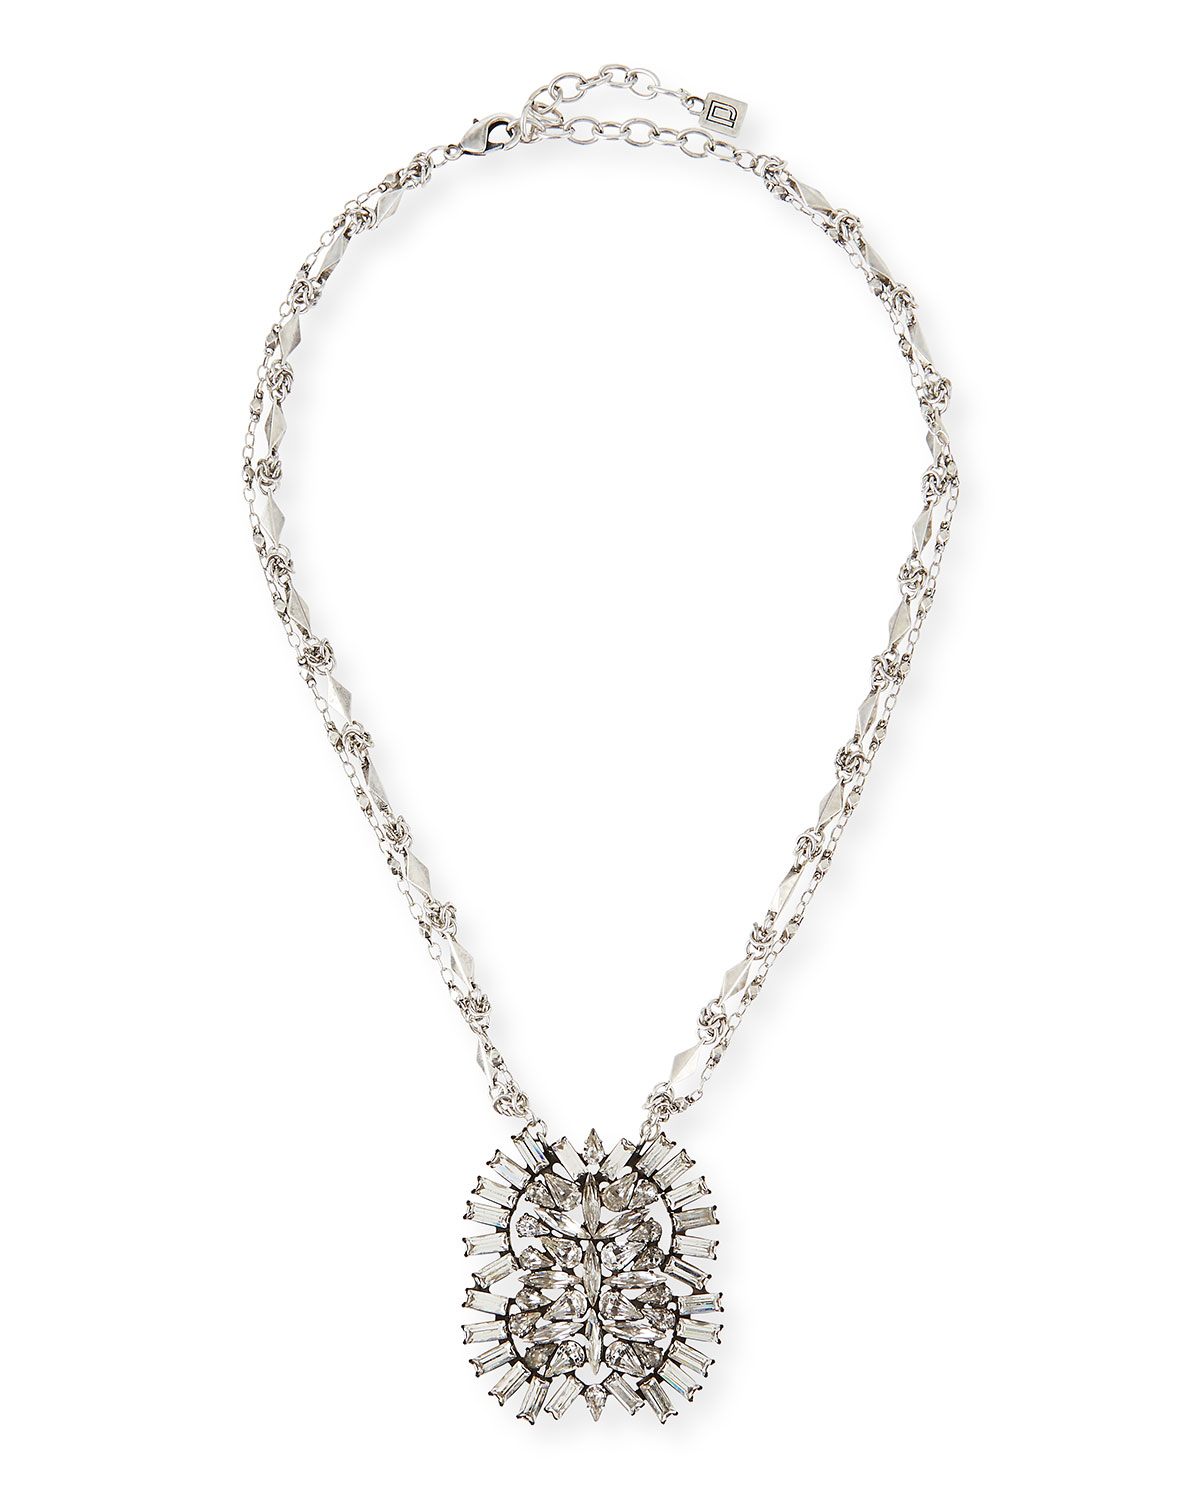 Lila Crystal Pendant Necklace